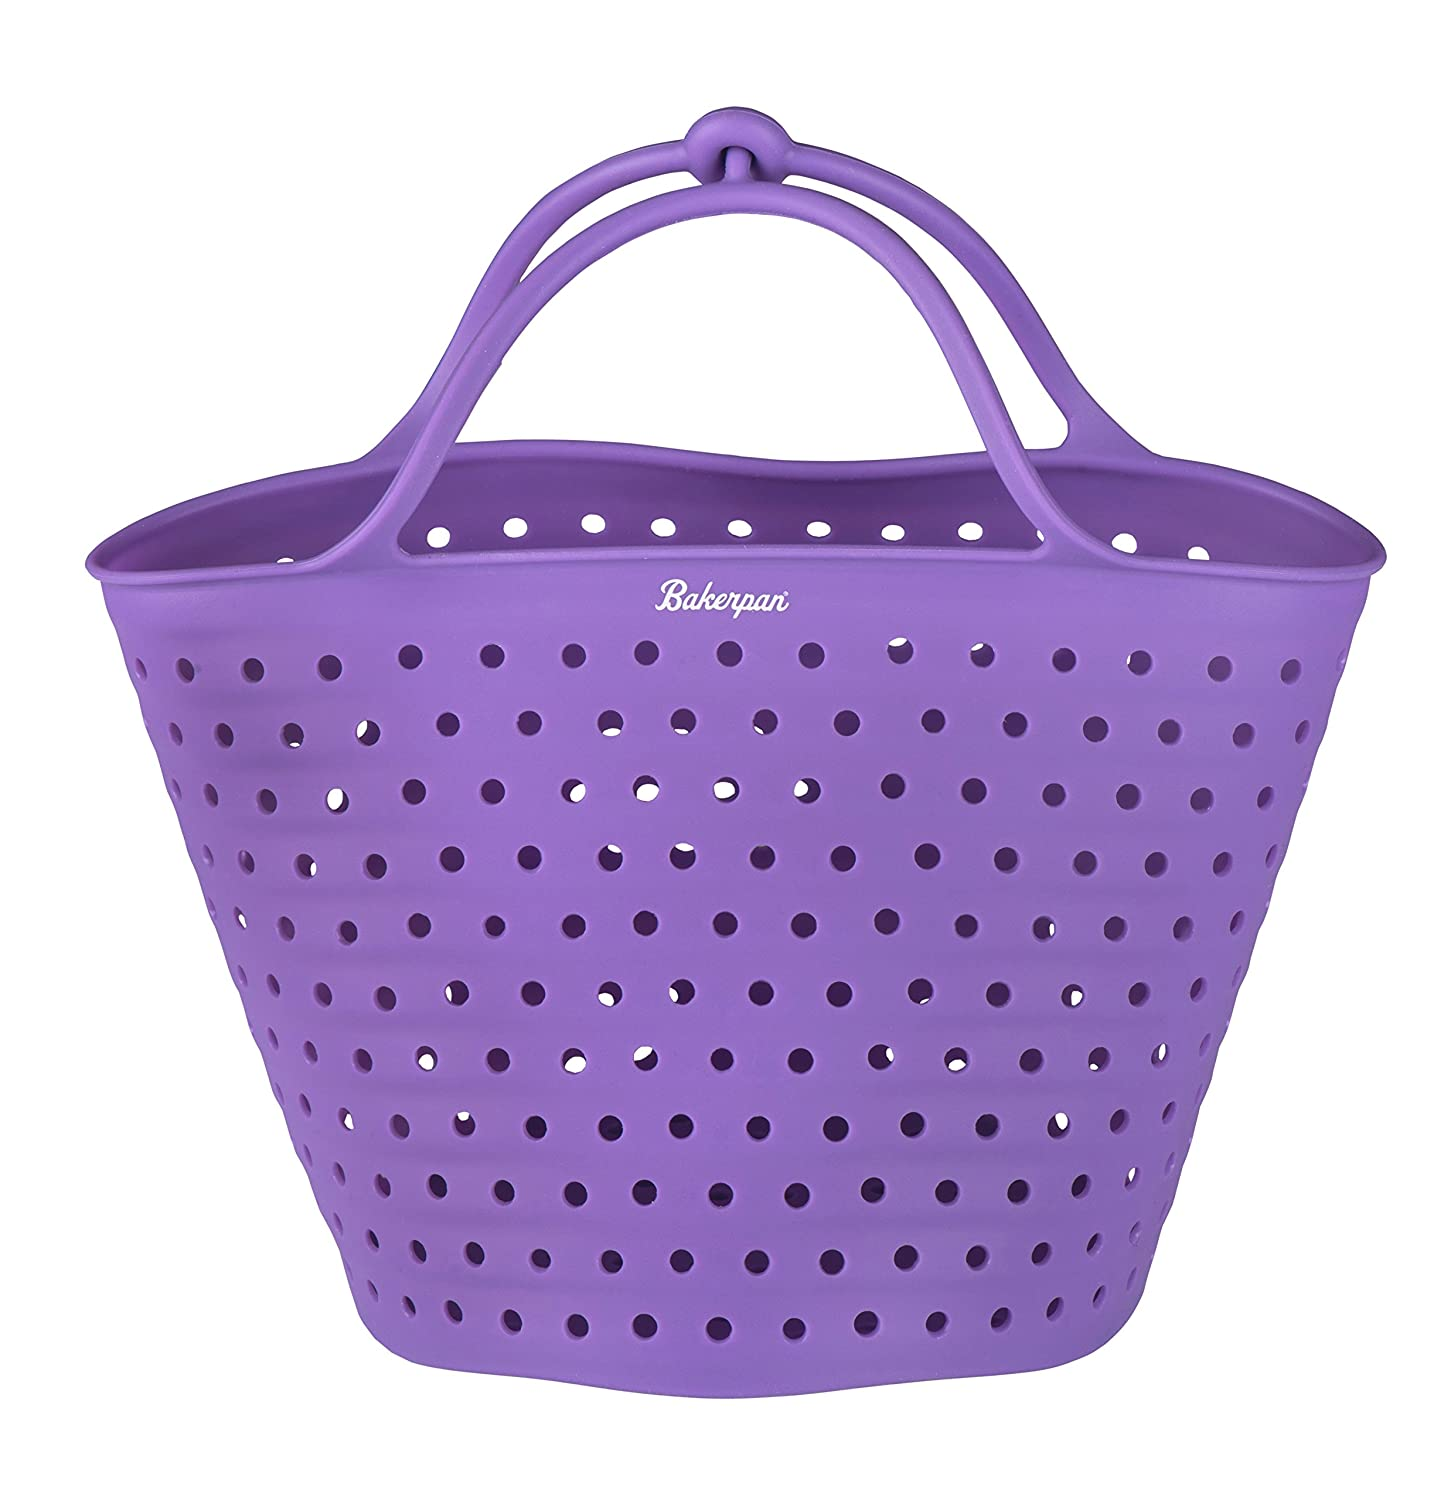 Bakerpan Silicone Vegetable Boiling Basket, Steamer and Strainer with Locking Handles, 5 Inches